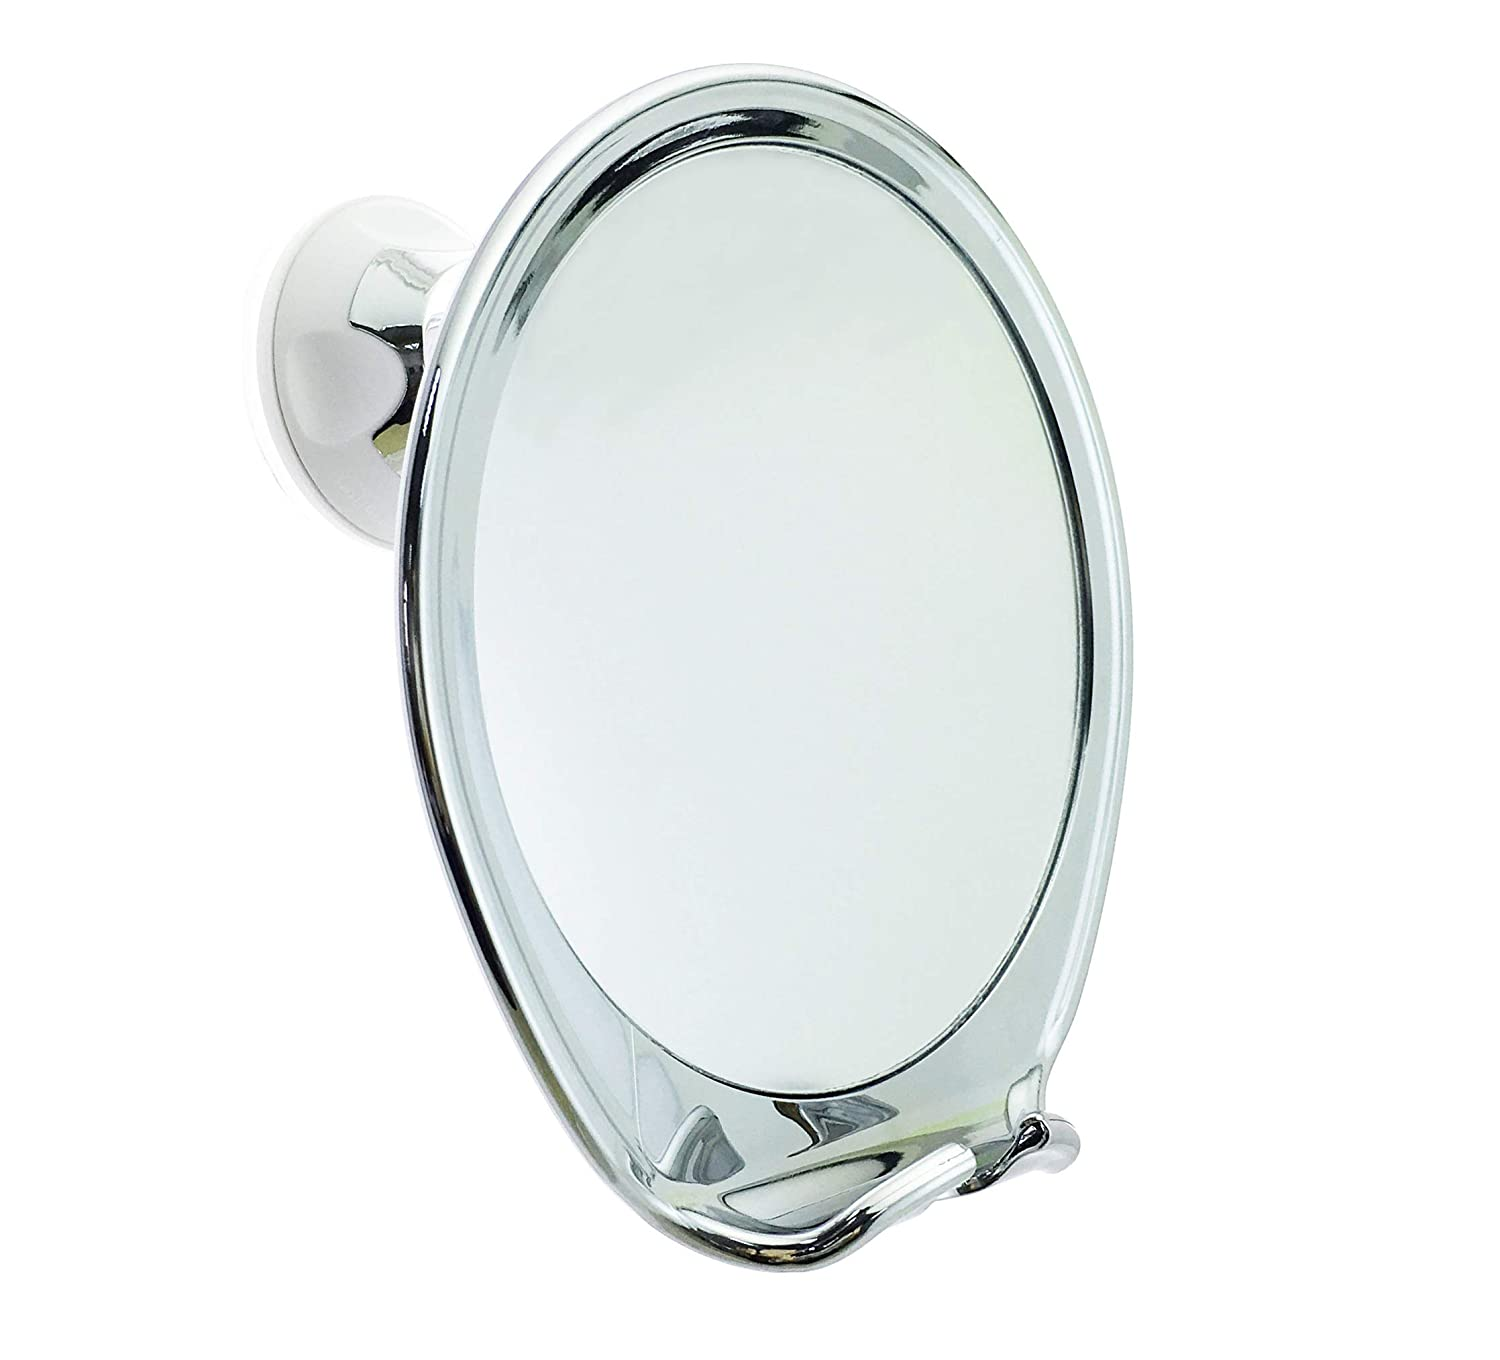 Top 10 Best Fogless Shower Mirrors Reviews in 2020 6